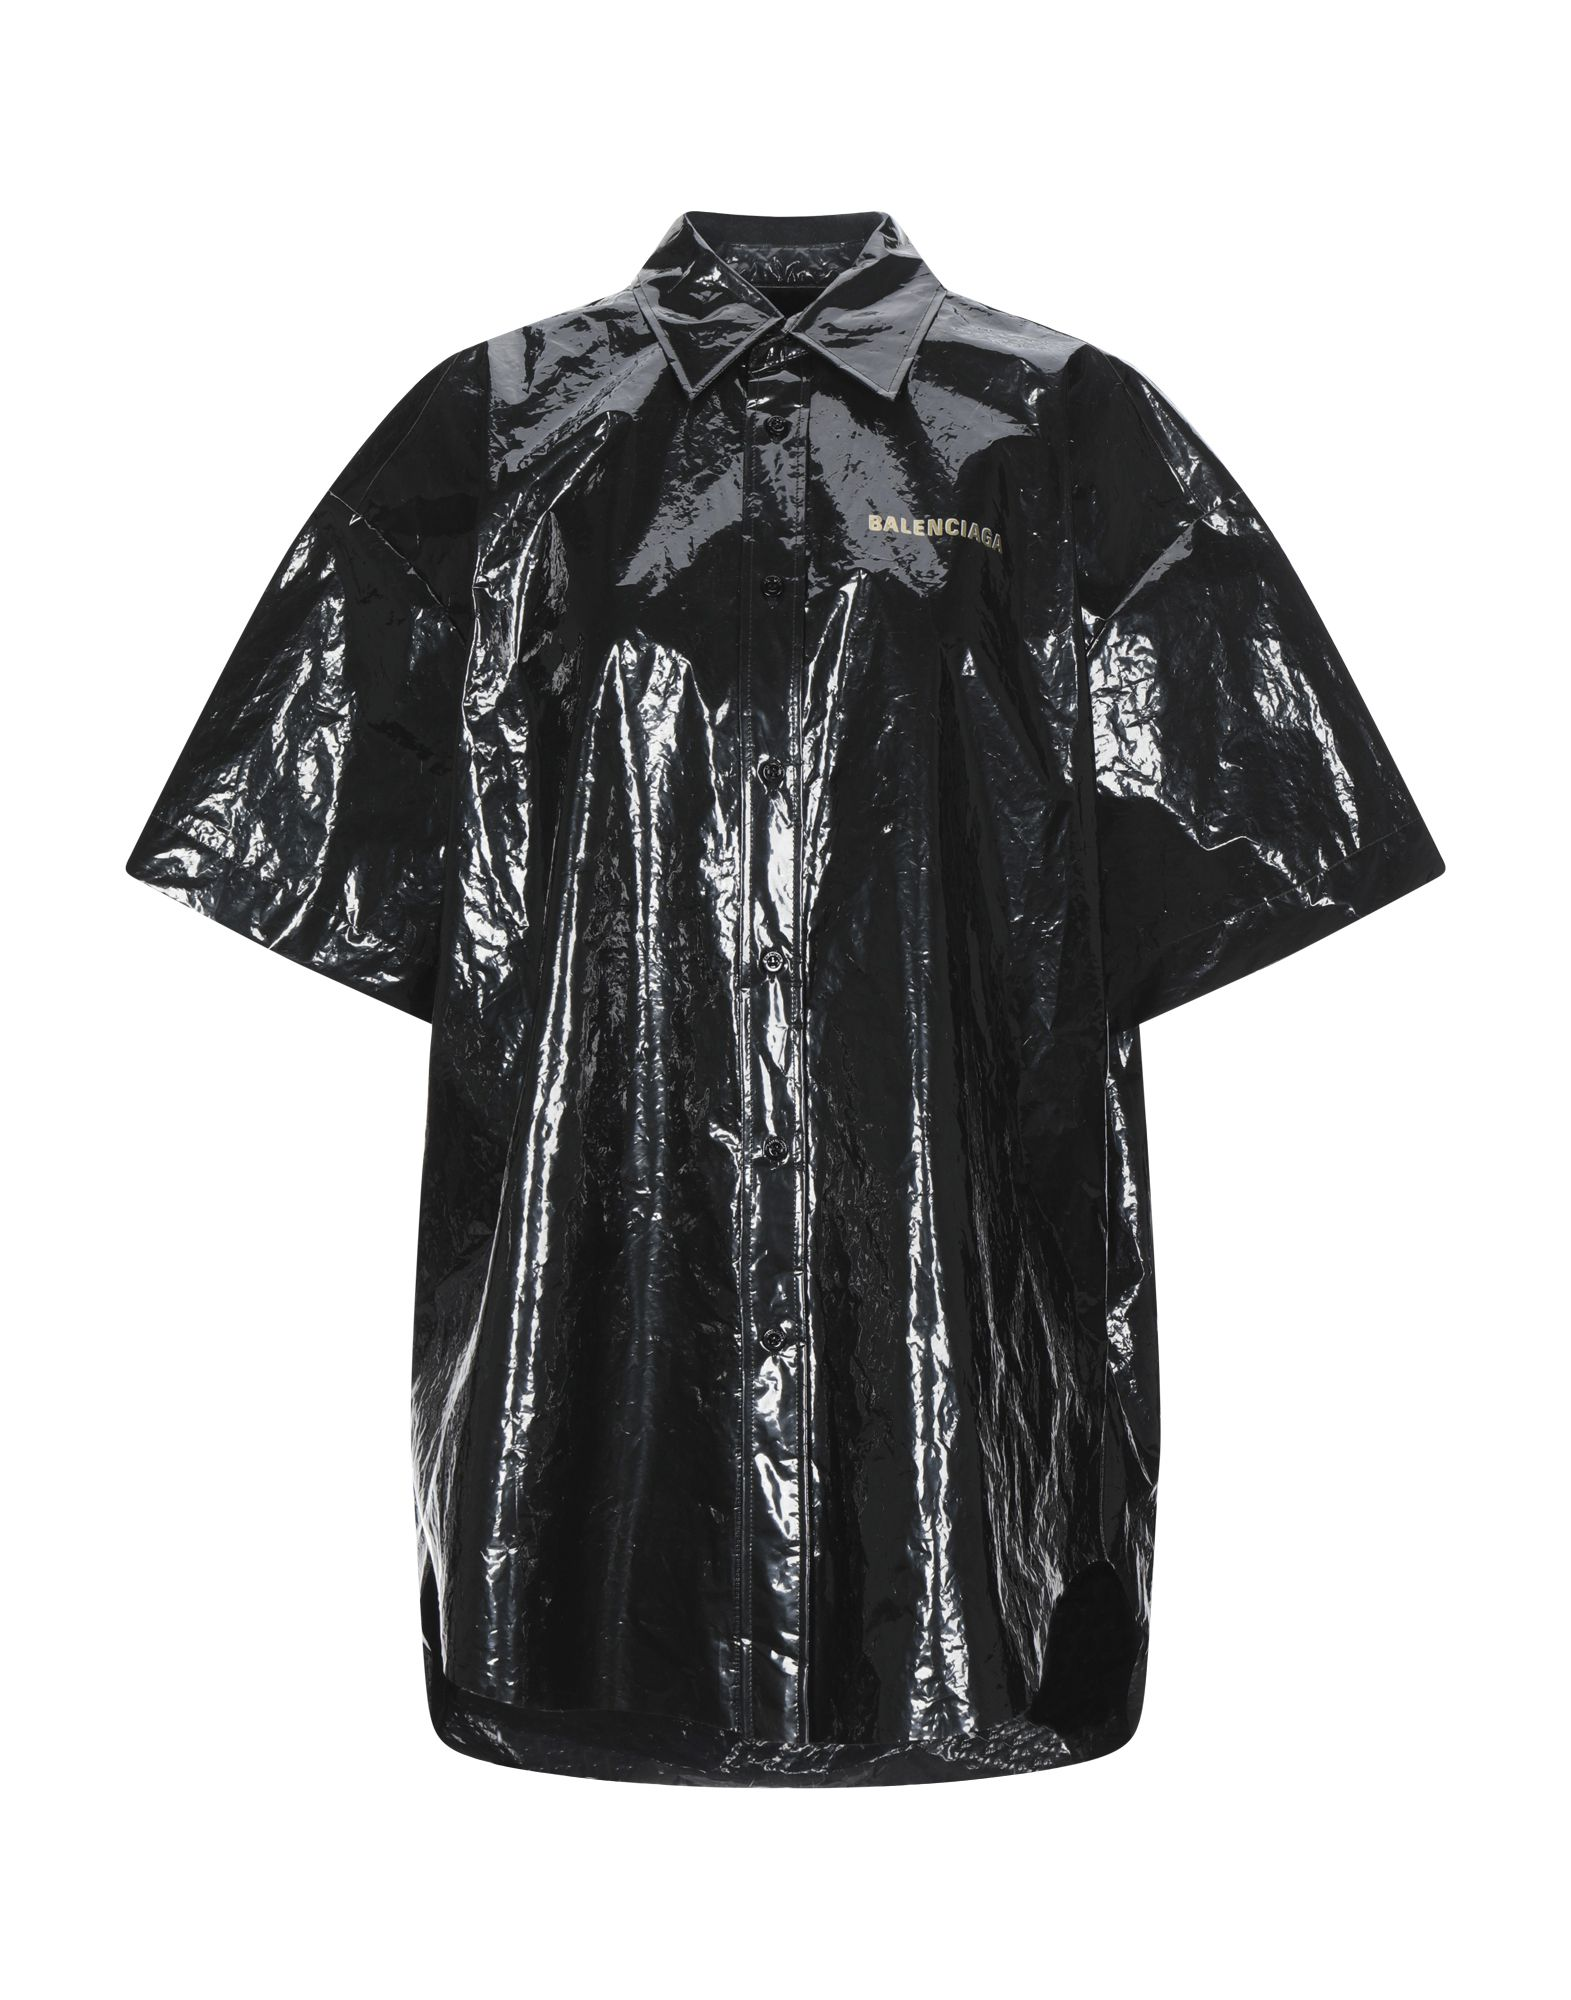 BALENCIAGA Shirts - Item 38933129